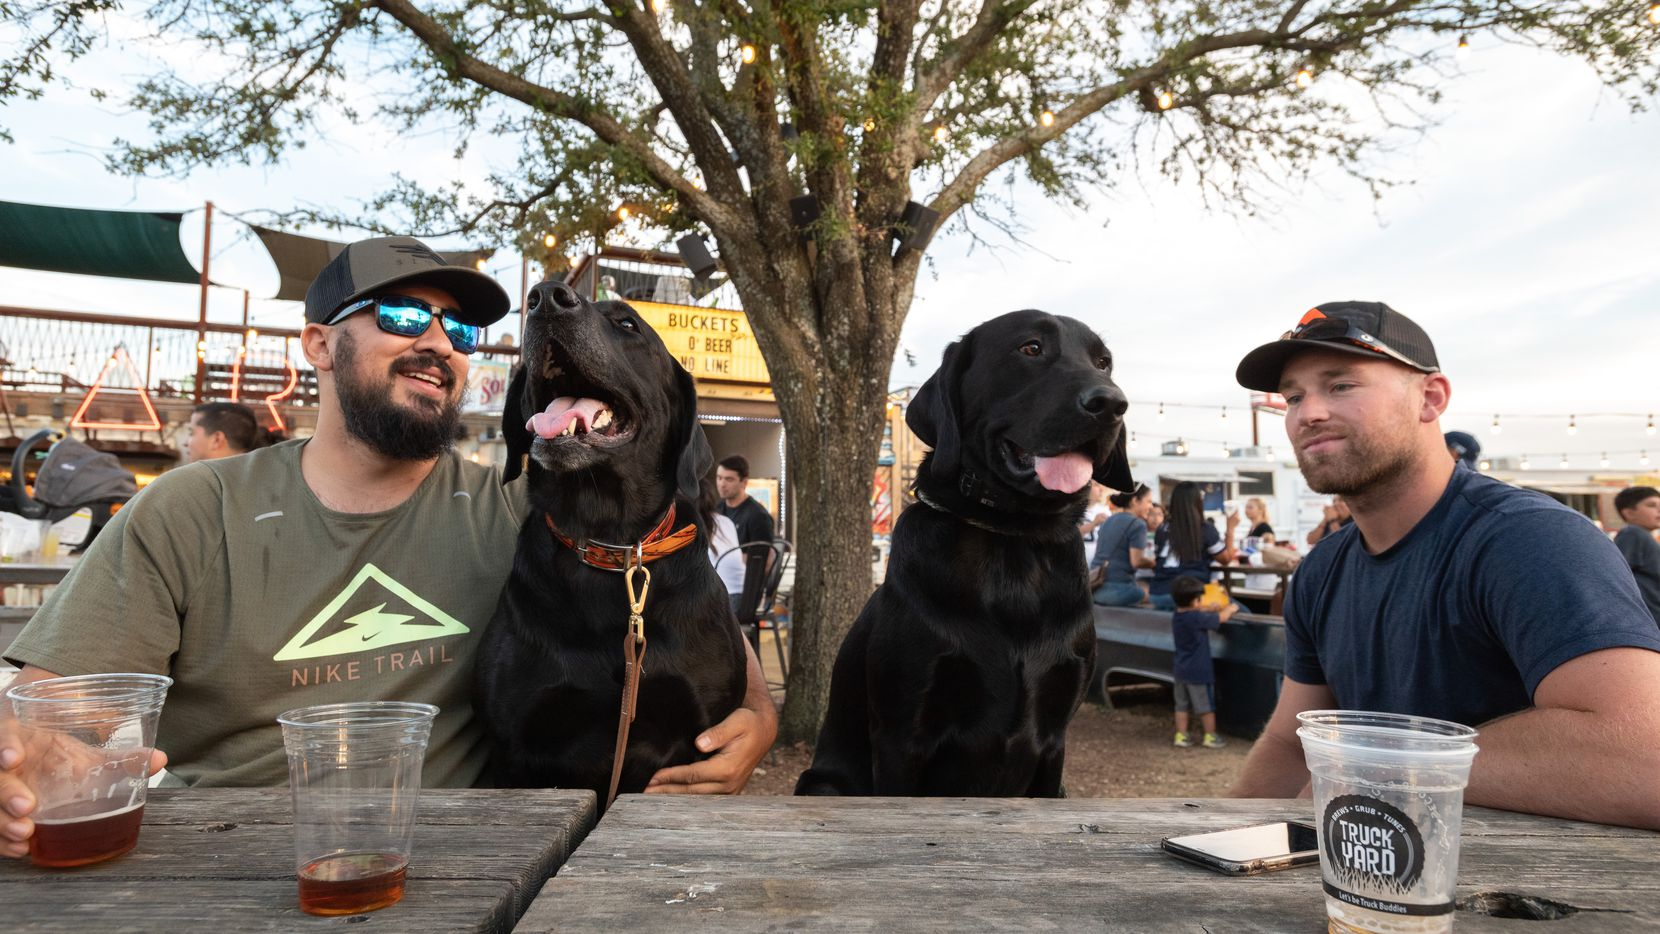 Louis Perez, left, with his dog Goose, and their buddies Bingham and Michael Swayne, have a couple of beers at Truck Yard. It's among 26 restaurants in Grandscape, a $1.5 billion development in The Colony.